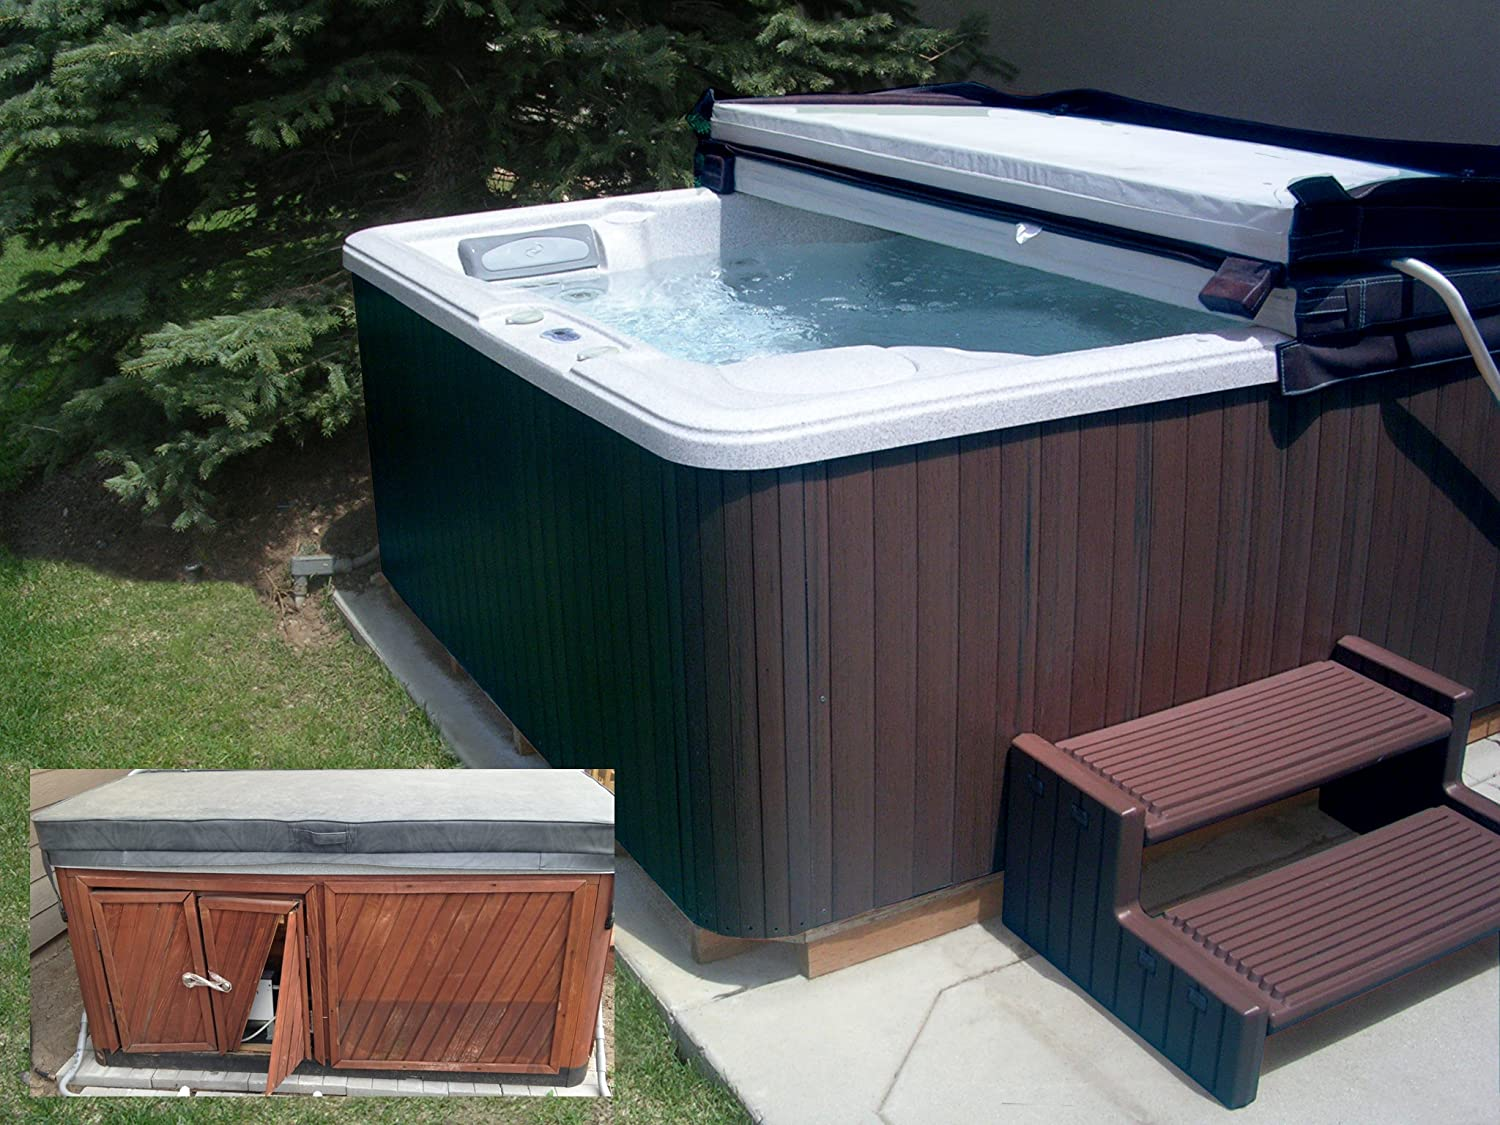 The Best Outdoor Hot Tubs For Your Garden: Reviews & Buying Guide 6